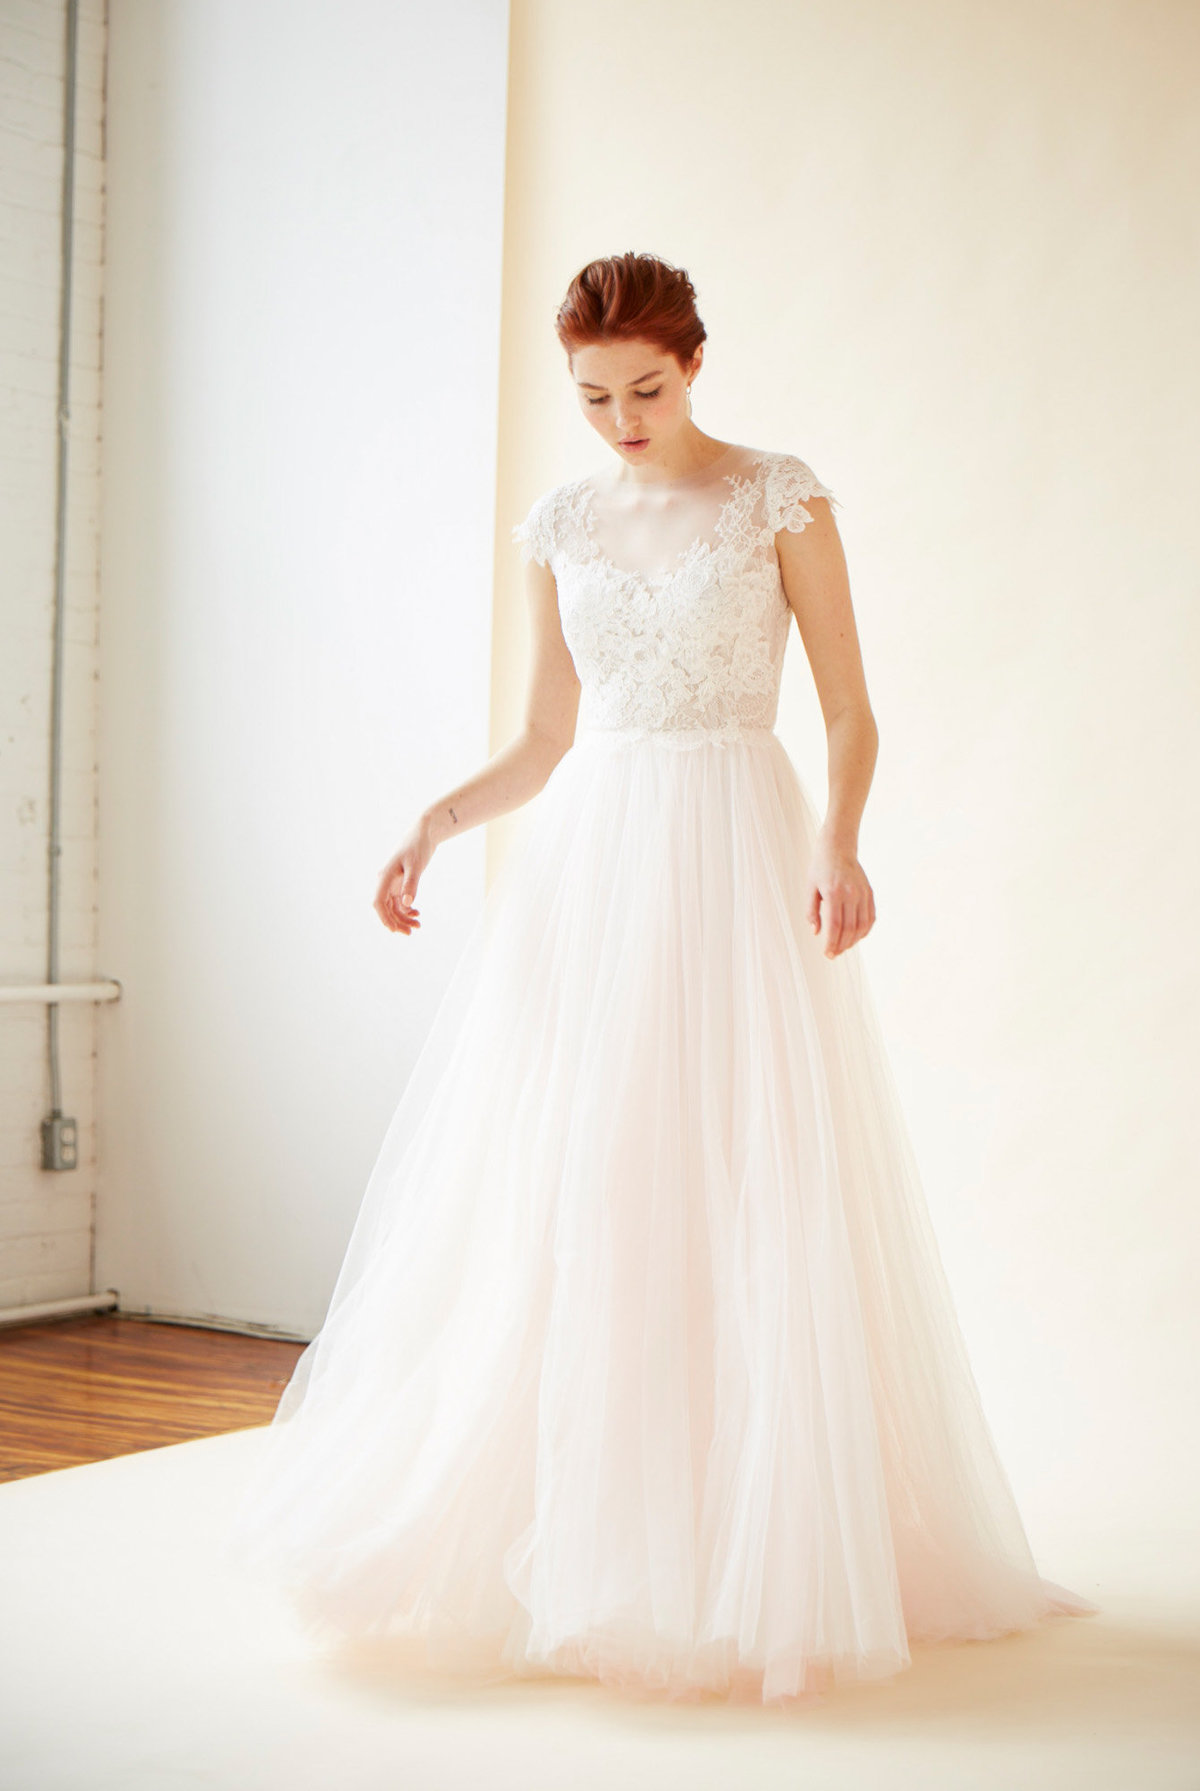 Lea-Ann-Belter-Bridal-Trunk-Show-Jessica-Haley-Bridal-Photo-012